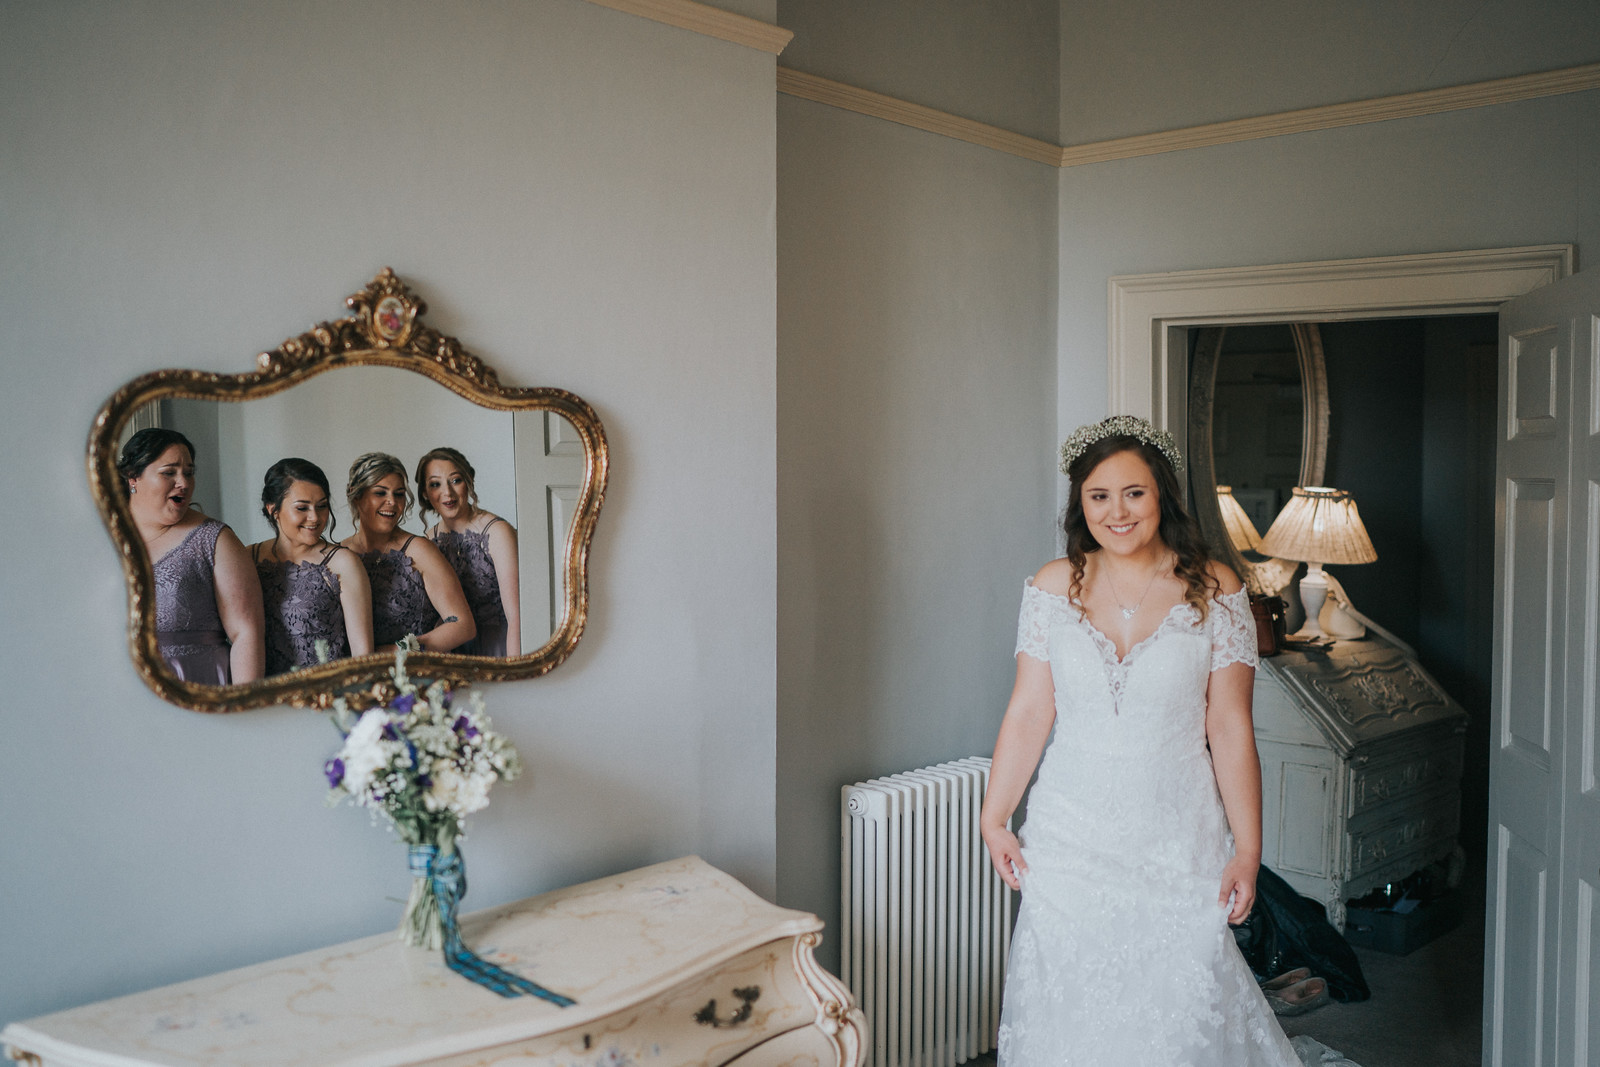 Unique image of bride and her bridesmaids - wedding photography Northumberland